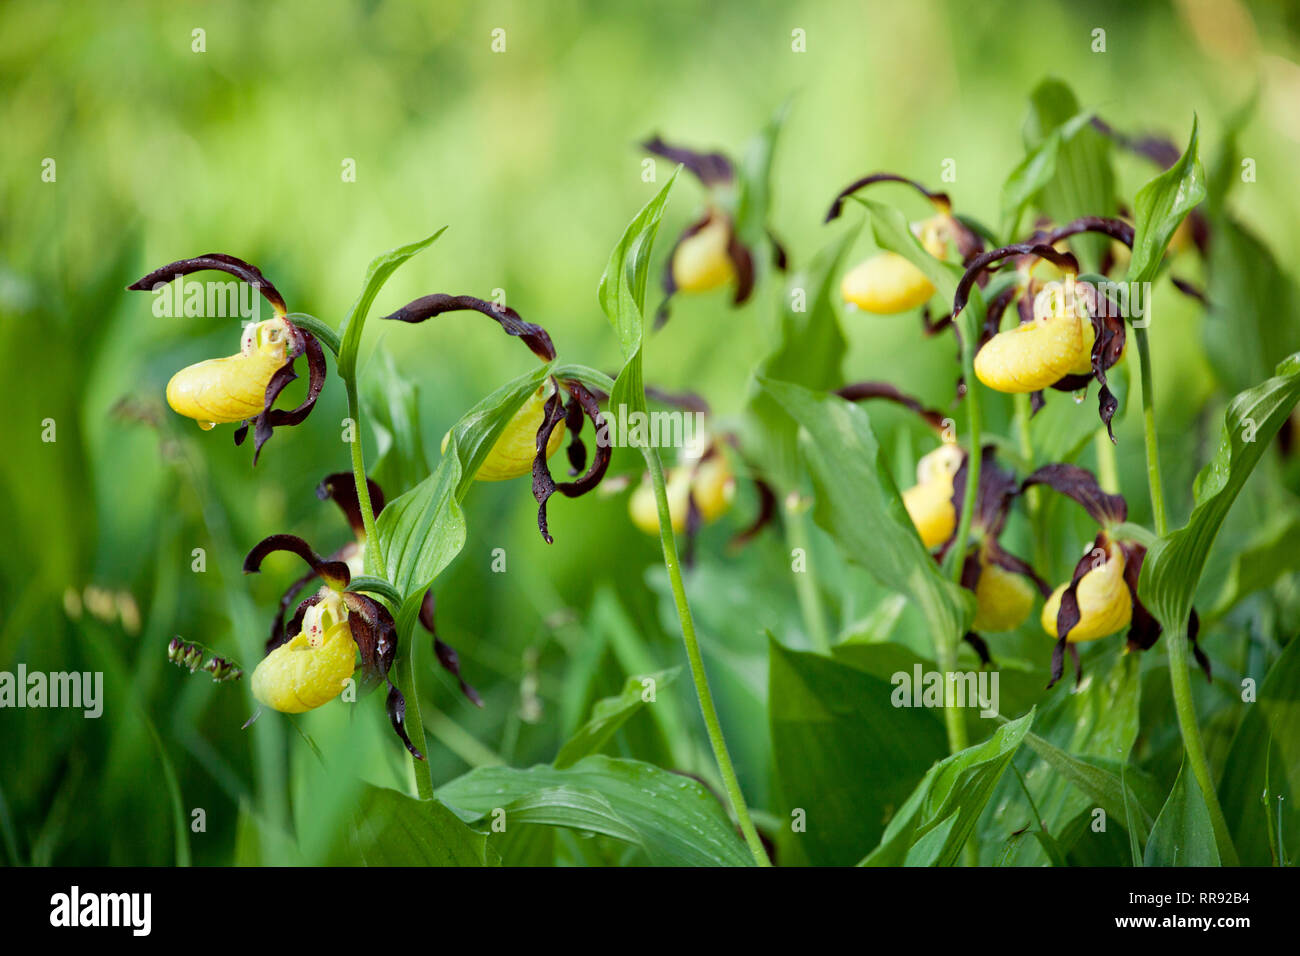 botany, Lady's Slippers, (Cypripedium), species, Nerve root, (Cypripedium calceolus), blossoms, Additional-Rights-Clearance-Info-Not-Available - Stock Image